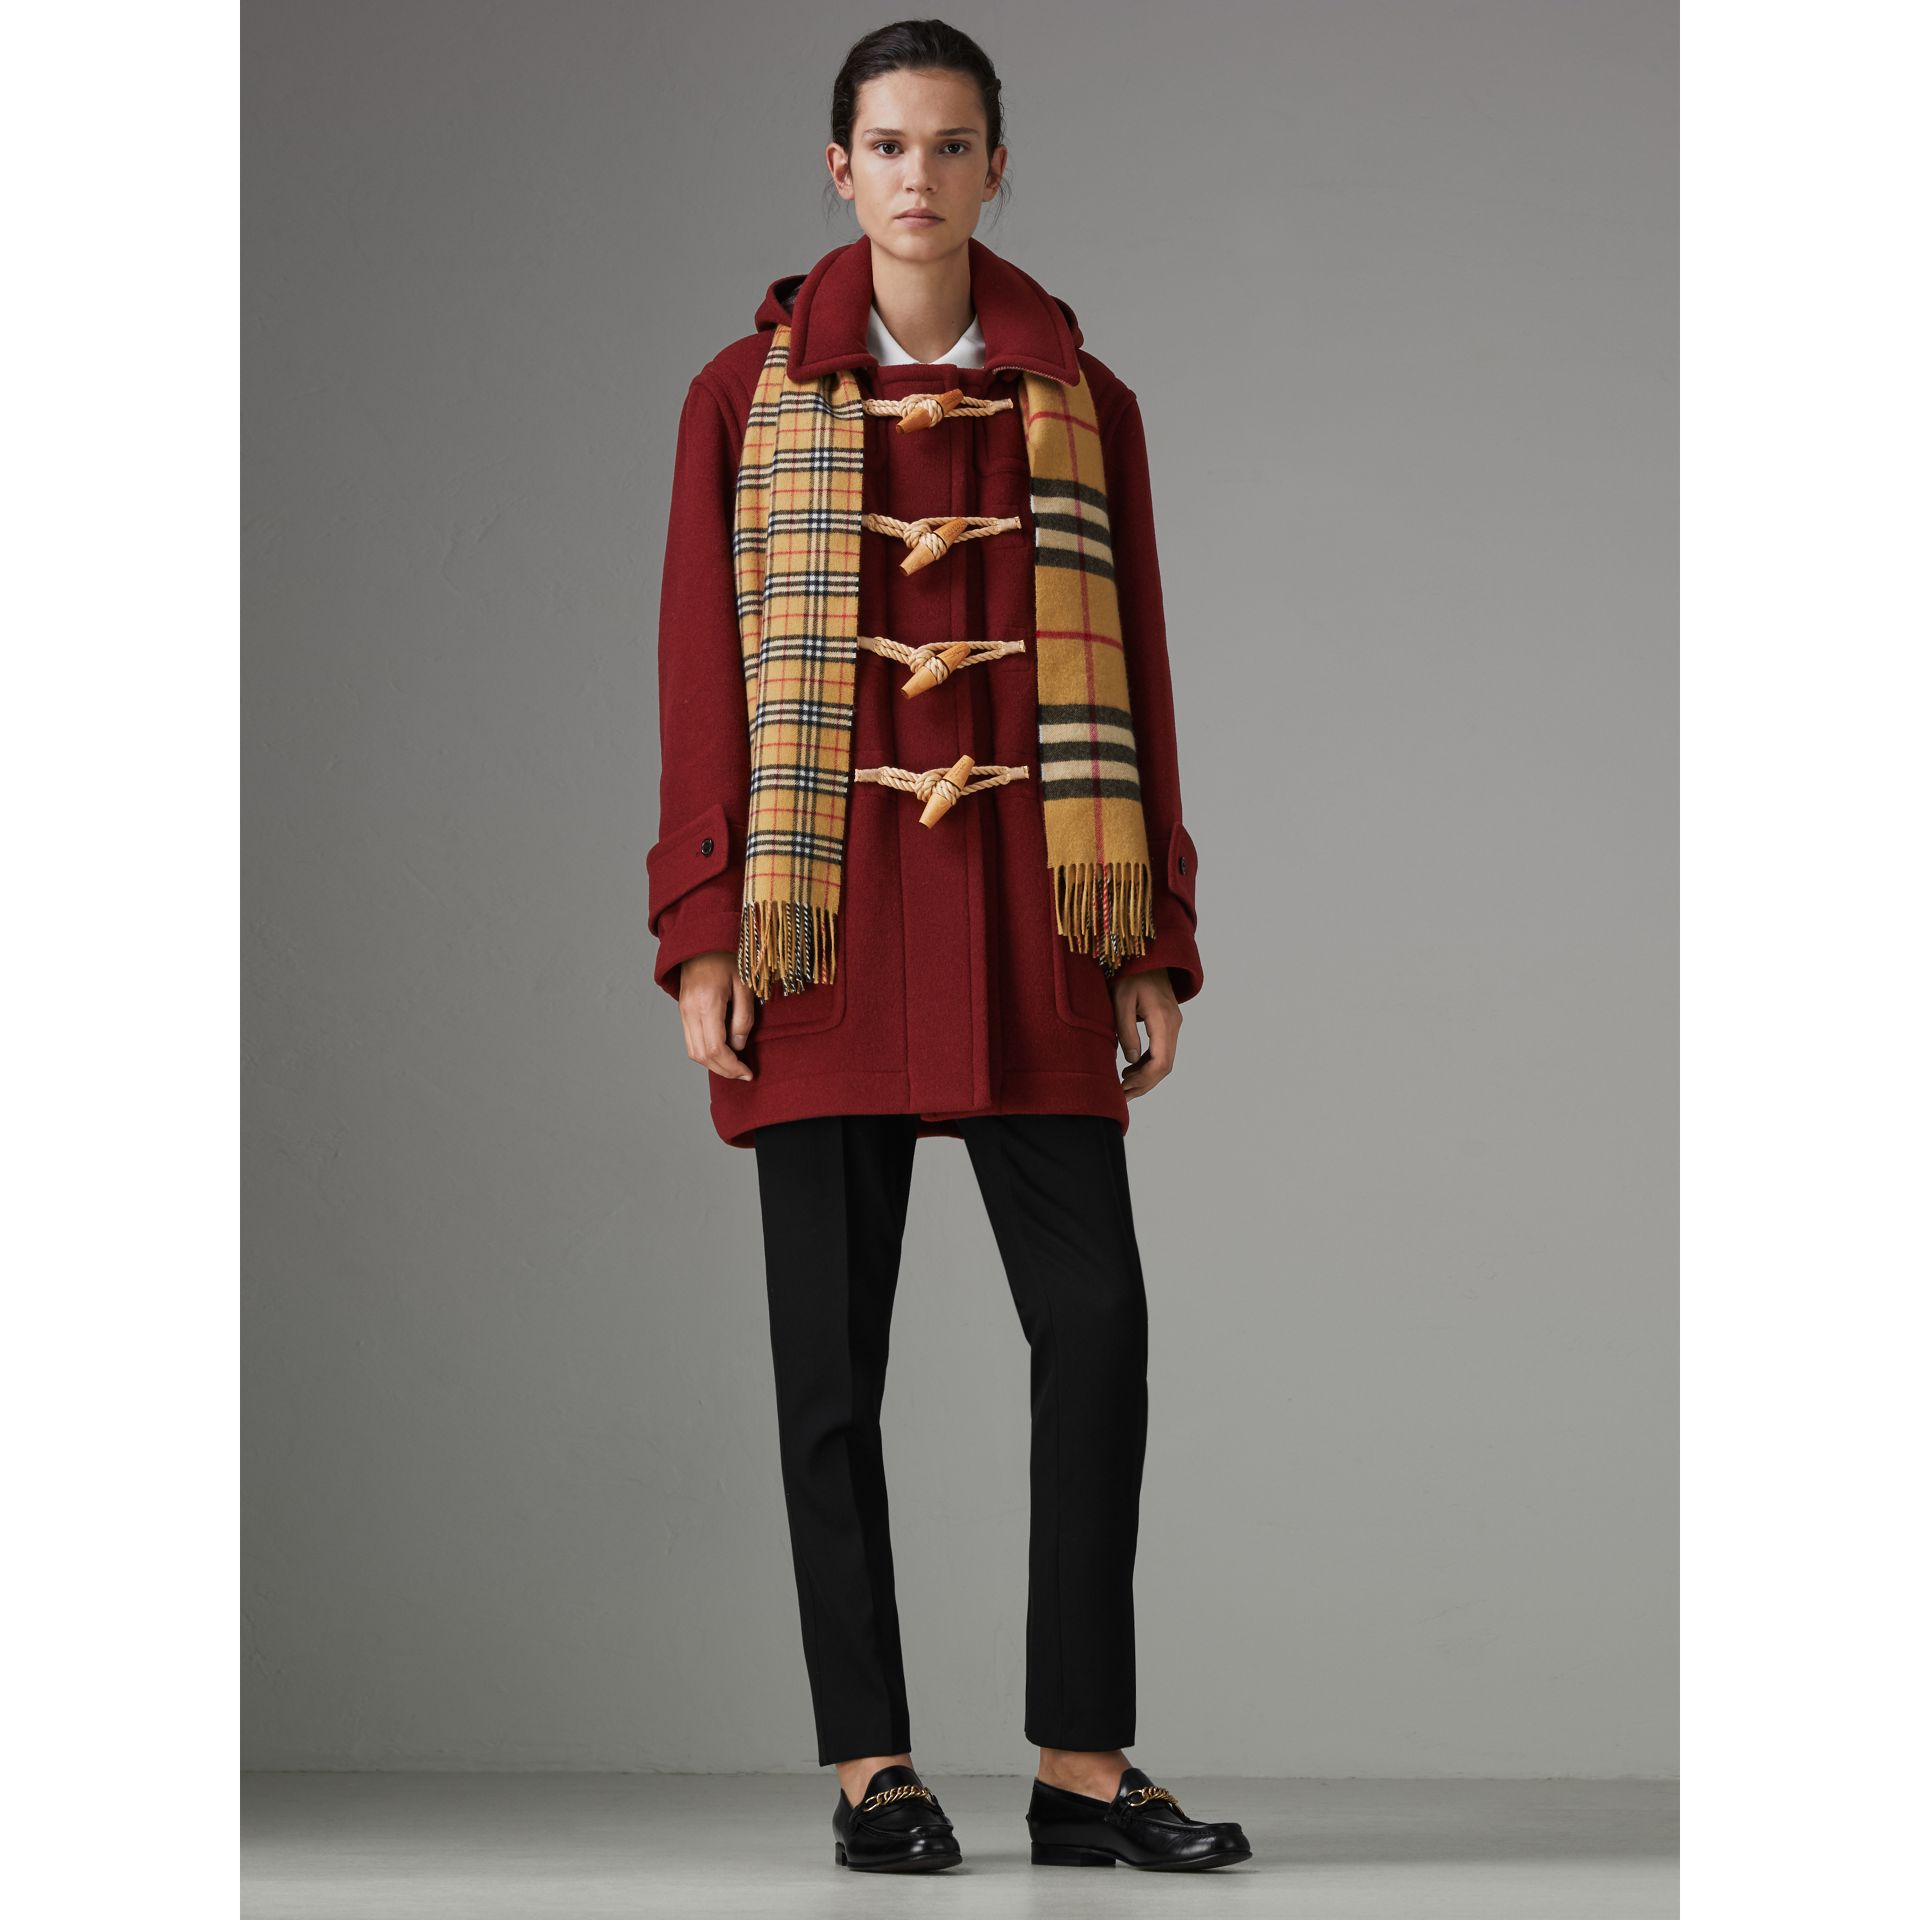 Gosha x Burberry Oversized Duffle Coat in Claret | Burberry - gallery image 2